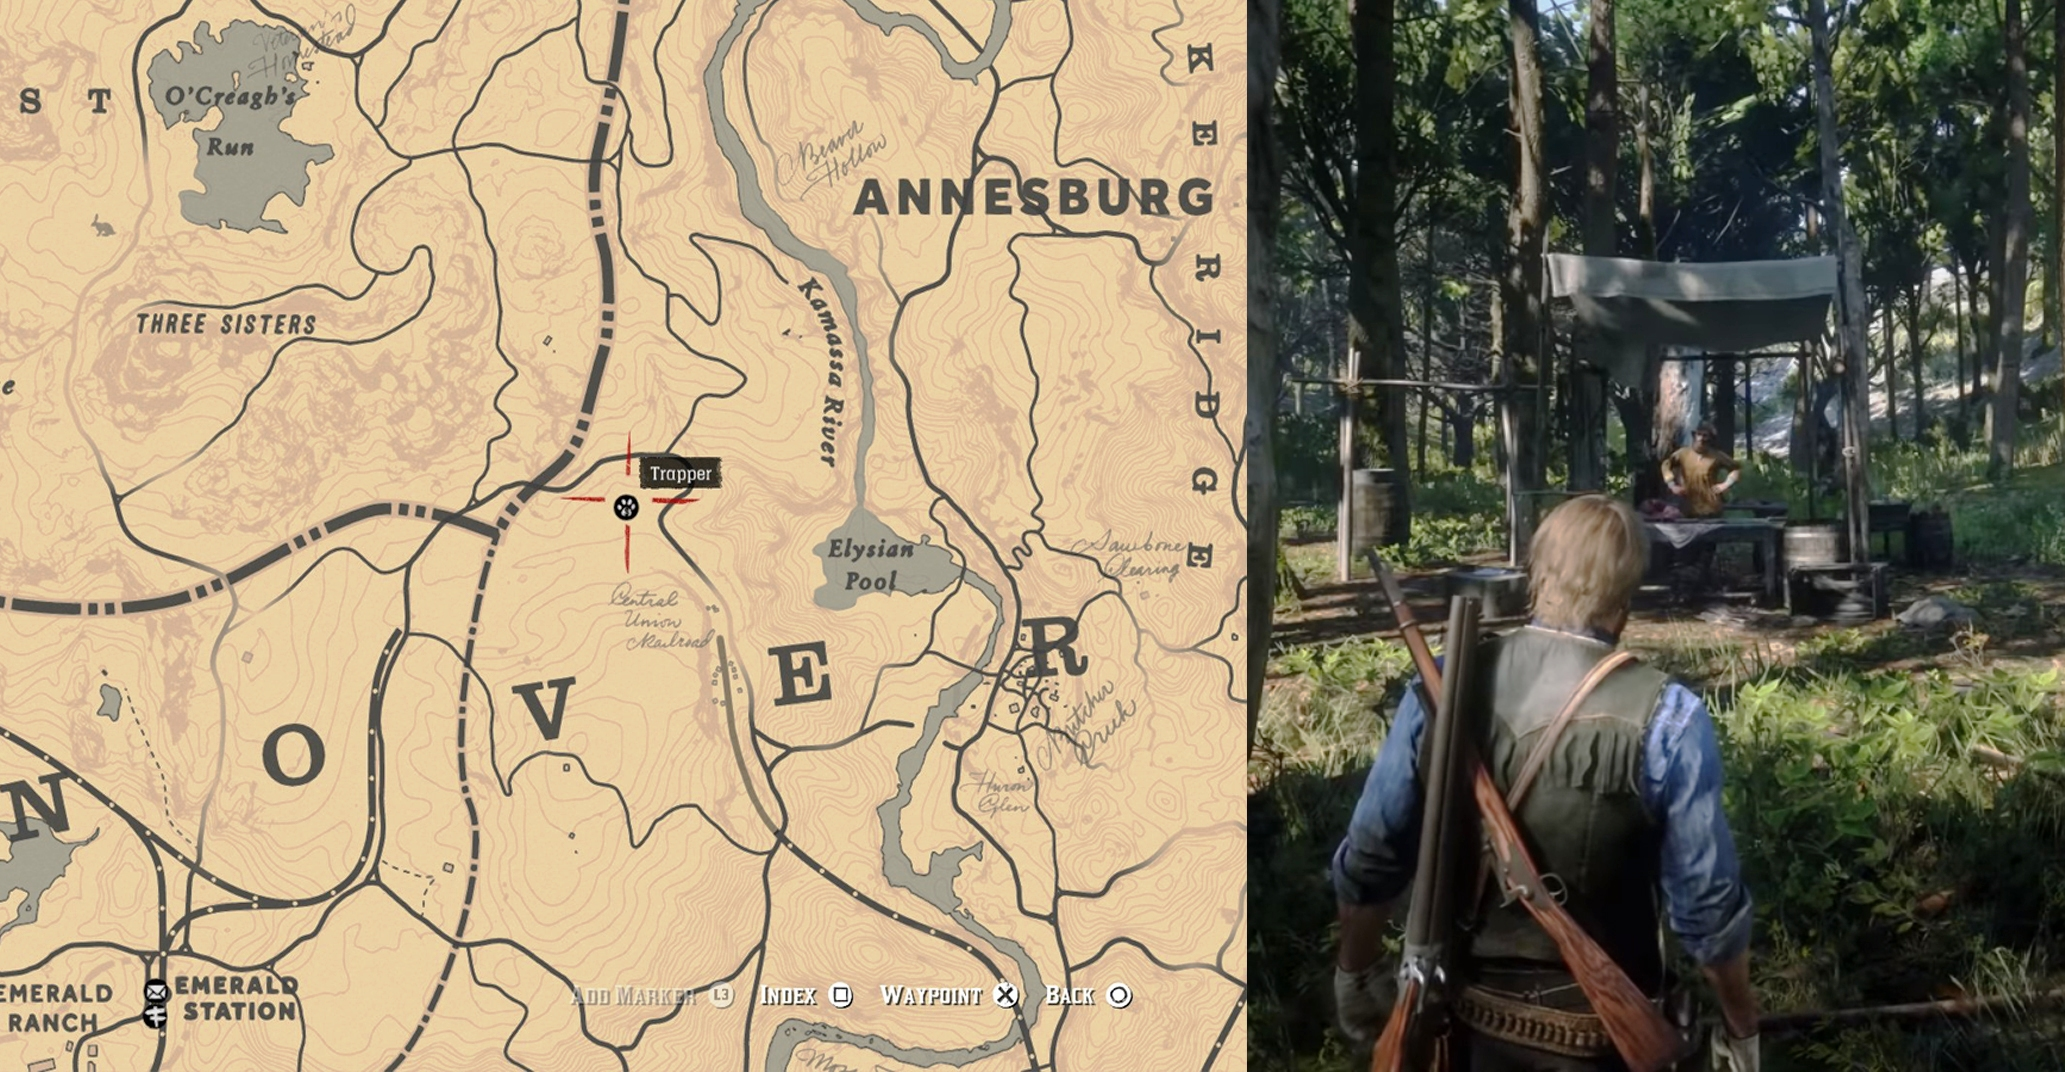 Rdr2 Karte Pdf.Red Dead Redemption 2 Trapper Locations With Map Image